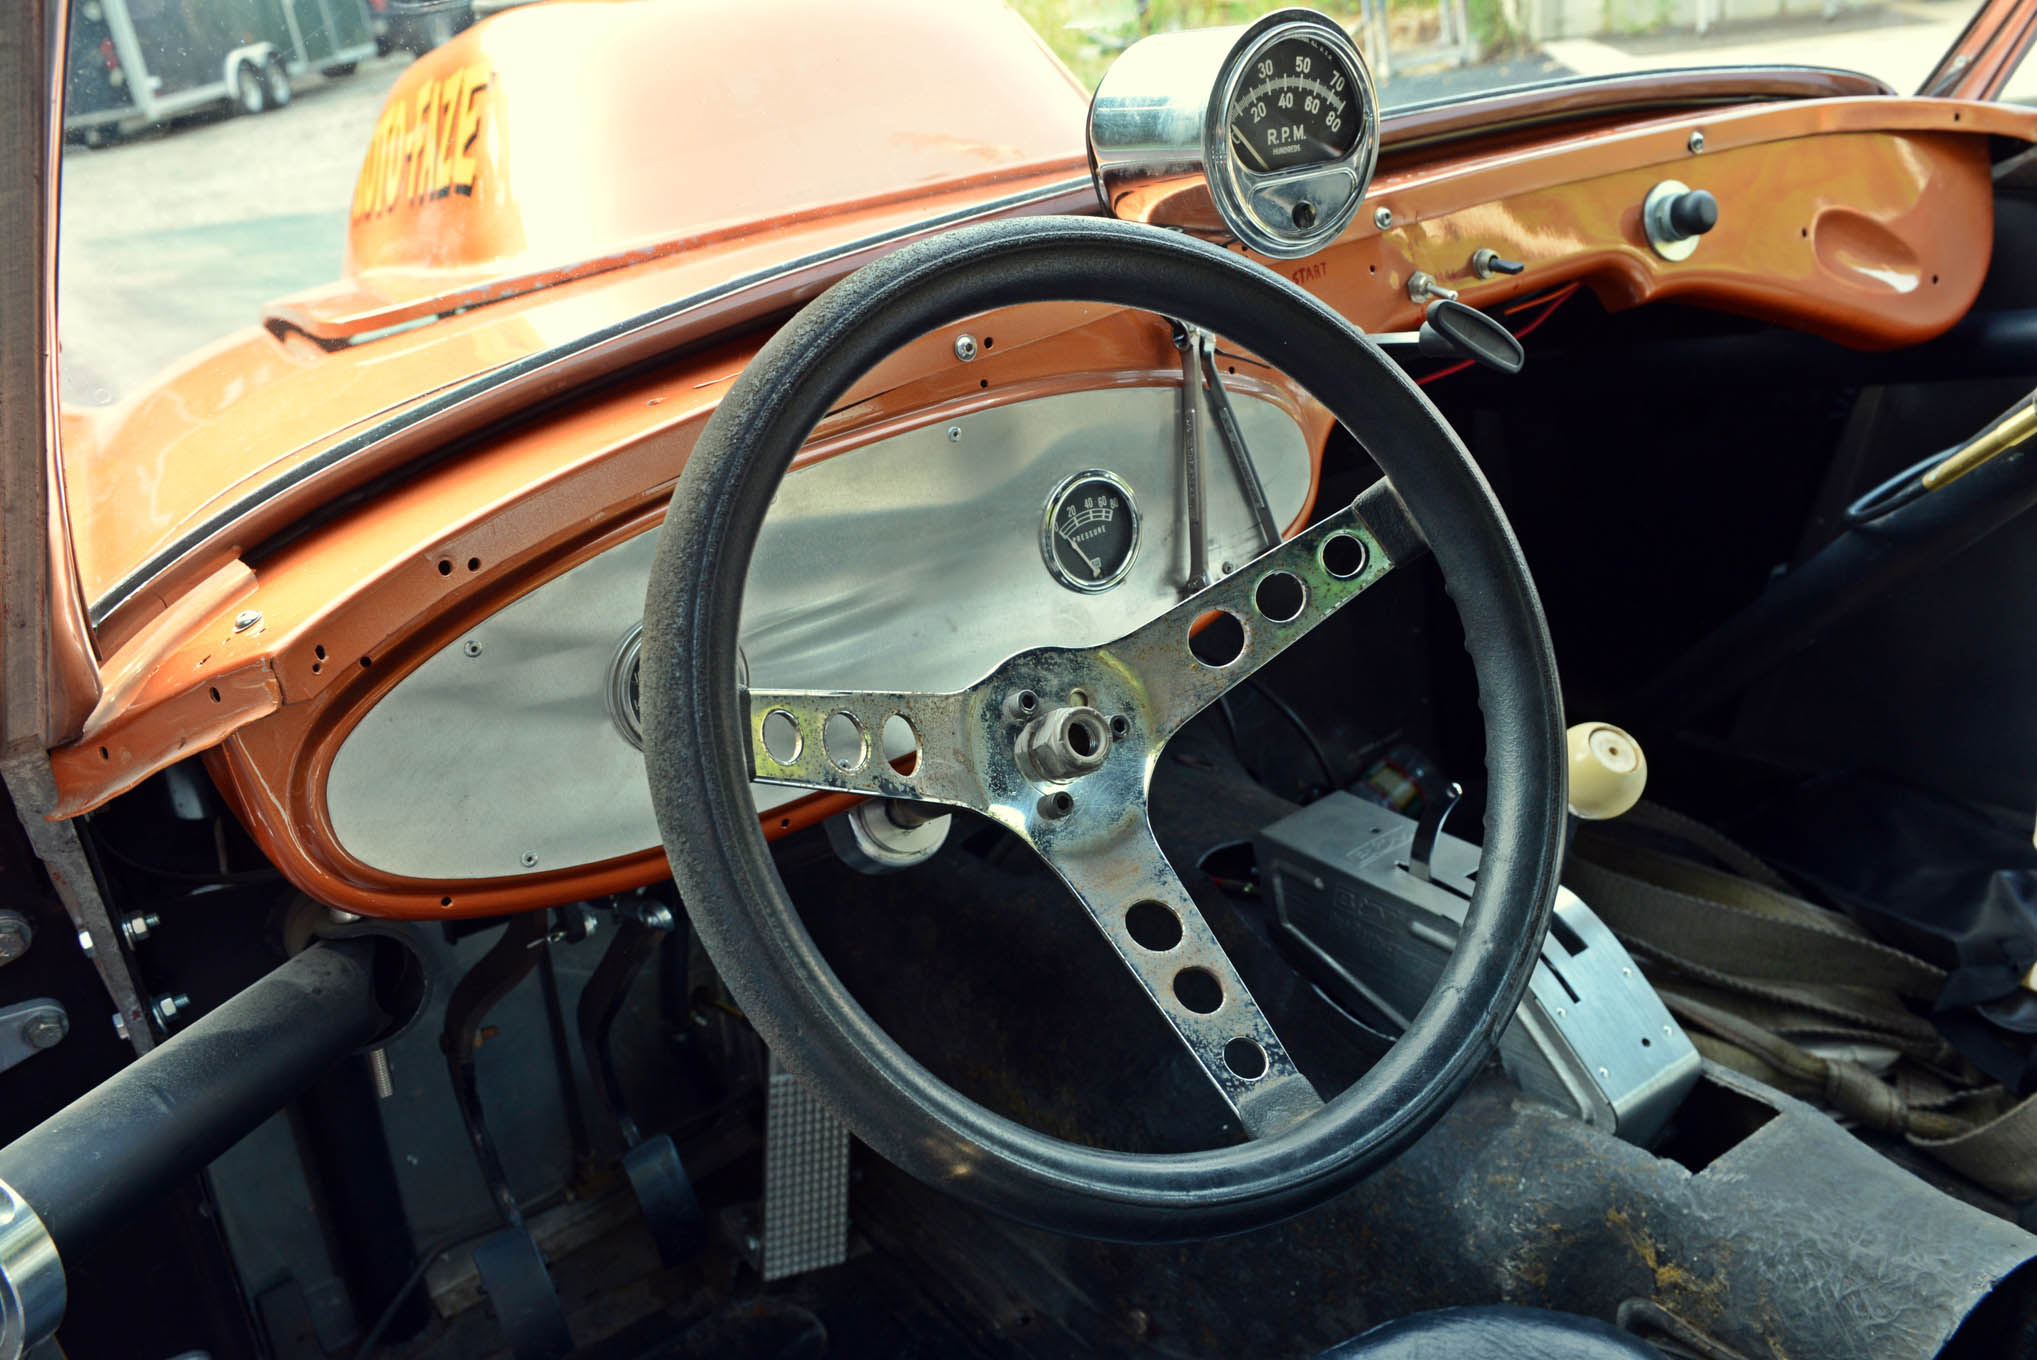 The Healy's interior is Spartan: seat, Superior steering wheel, and B&M ratchet shifter. A vintage Sun tach sits where it did 45 years ago. Notice the wrenches for adjusting the valves.